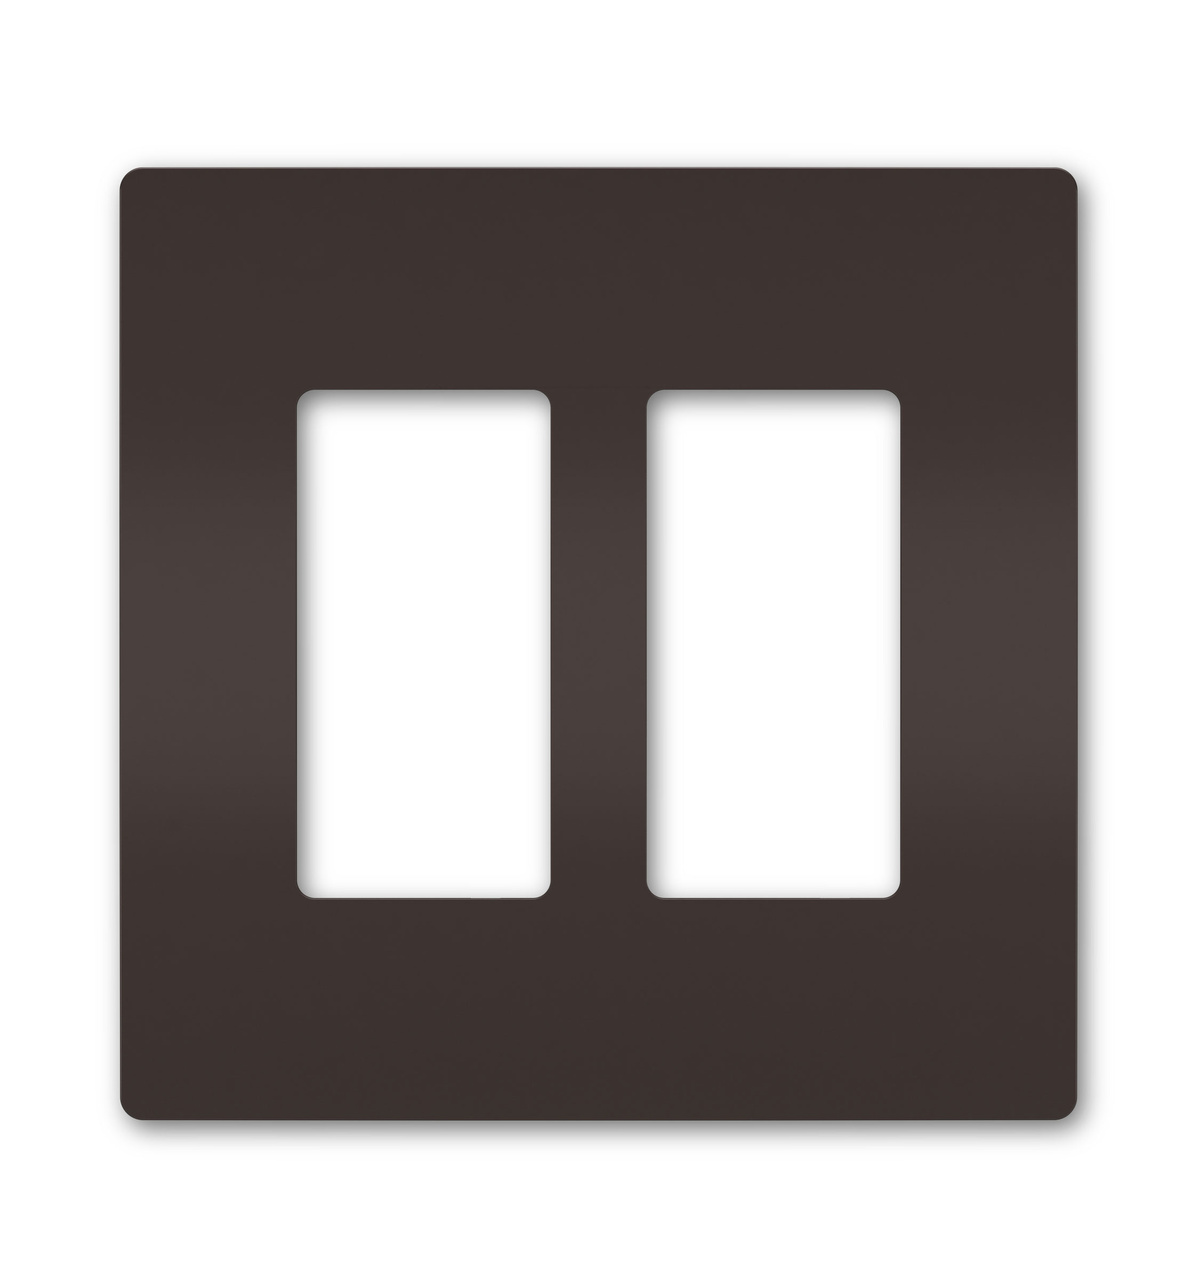 Two-Gang Screwless Wall Plate, Brown